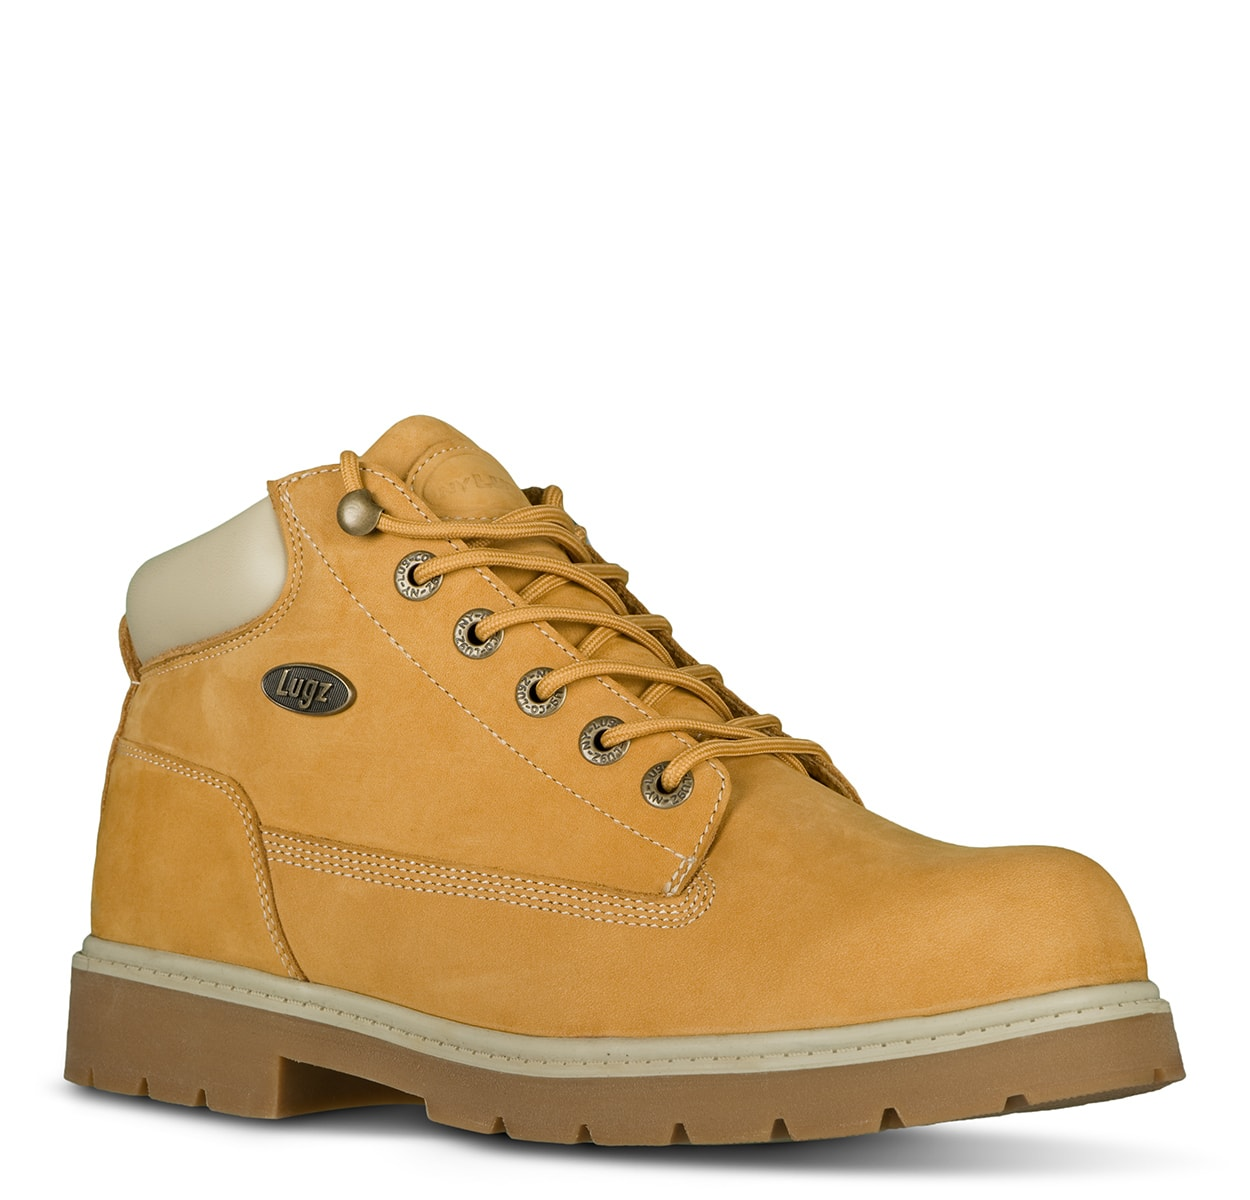 Men's Drifter Lx Chukka Boot (Choose Your Color: Golden Wheat/Cream/Gum, Choose Your Size: 8.0)